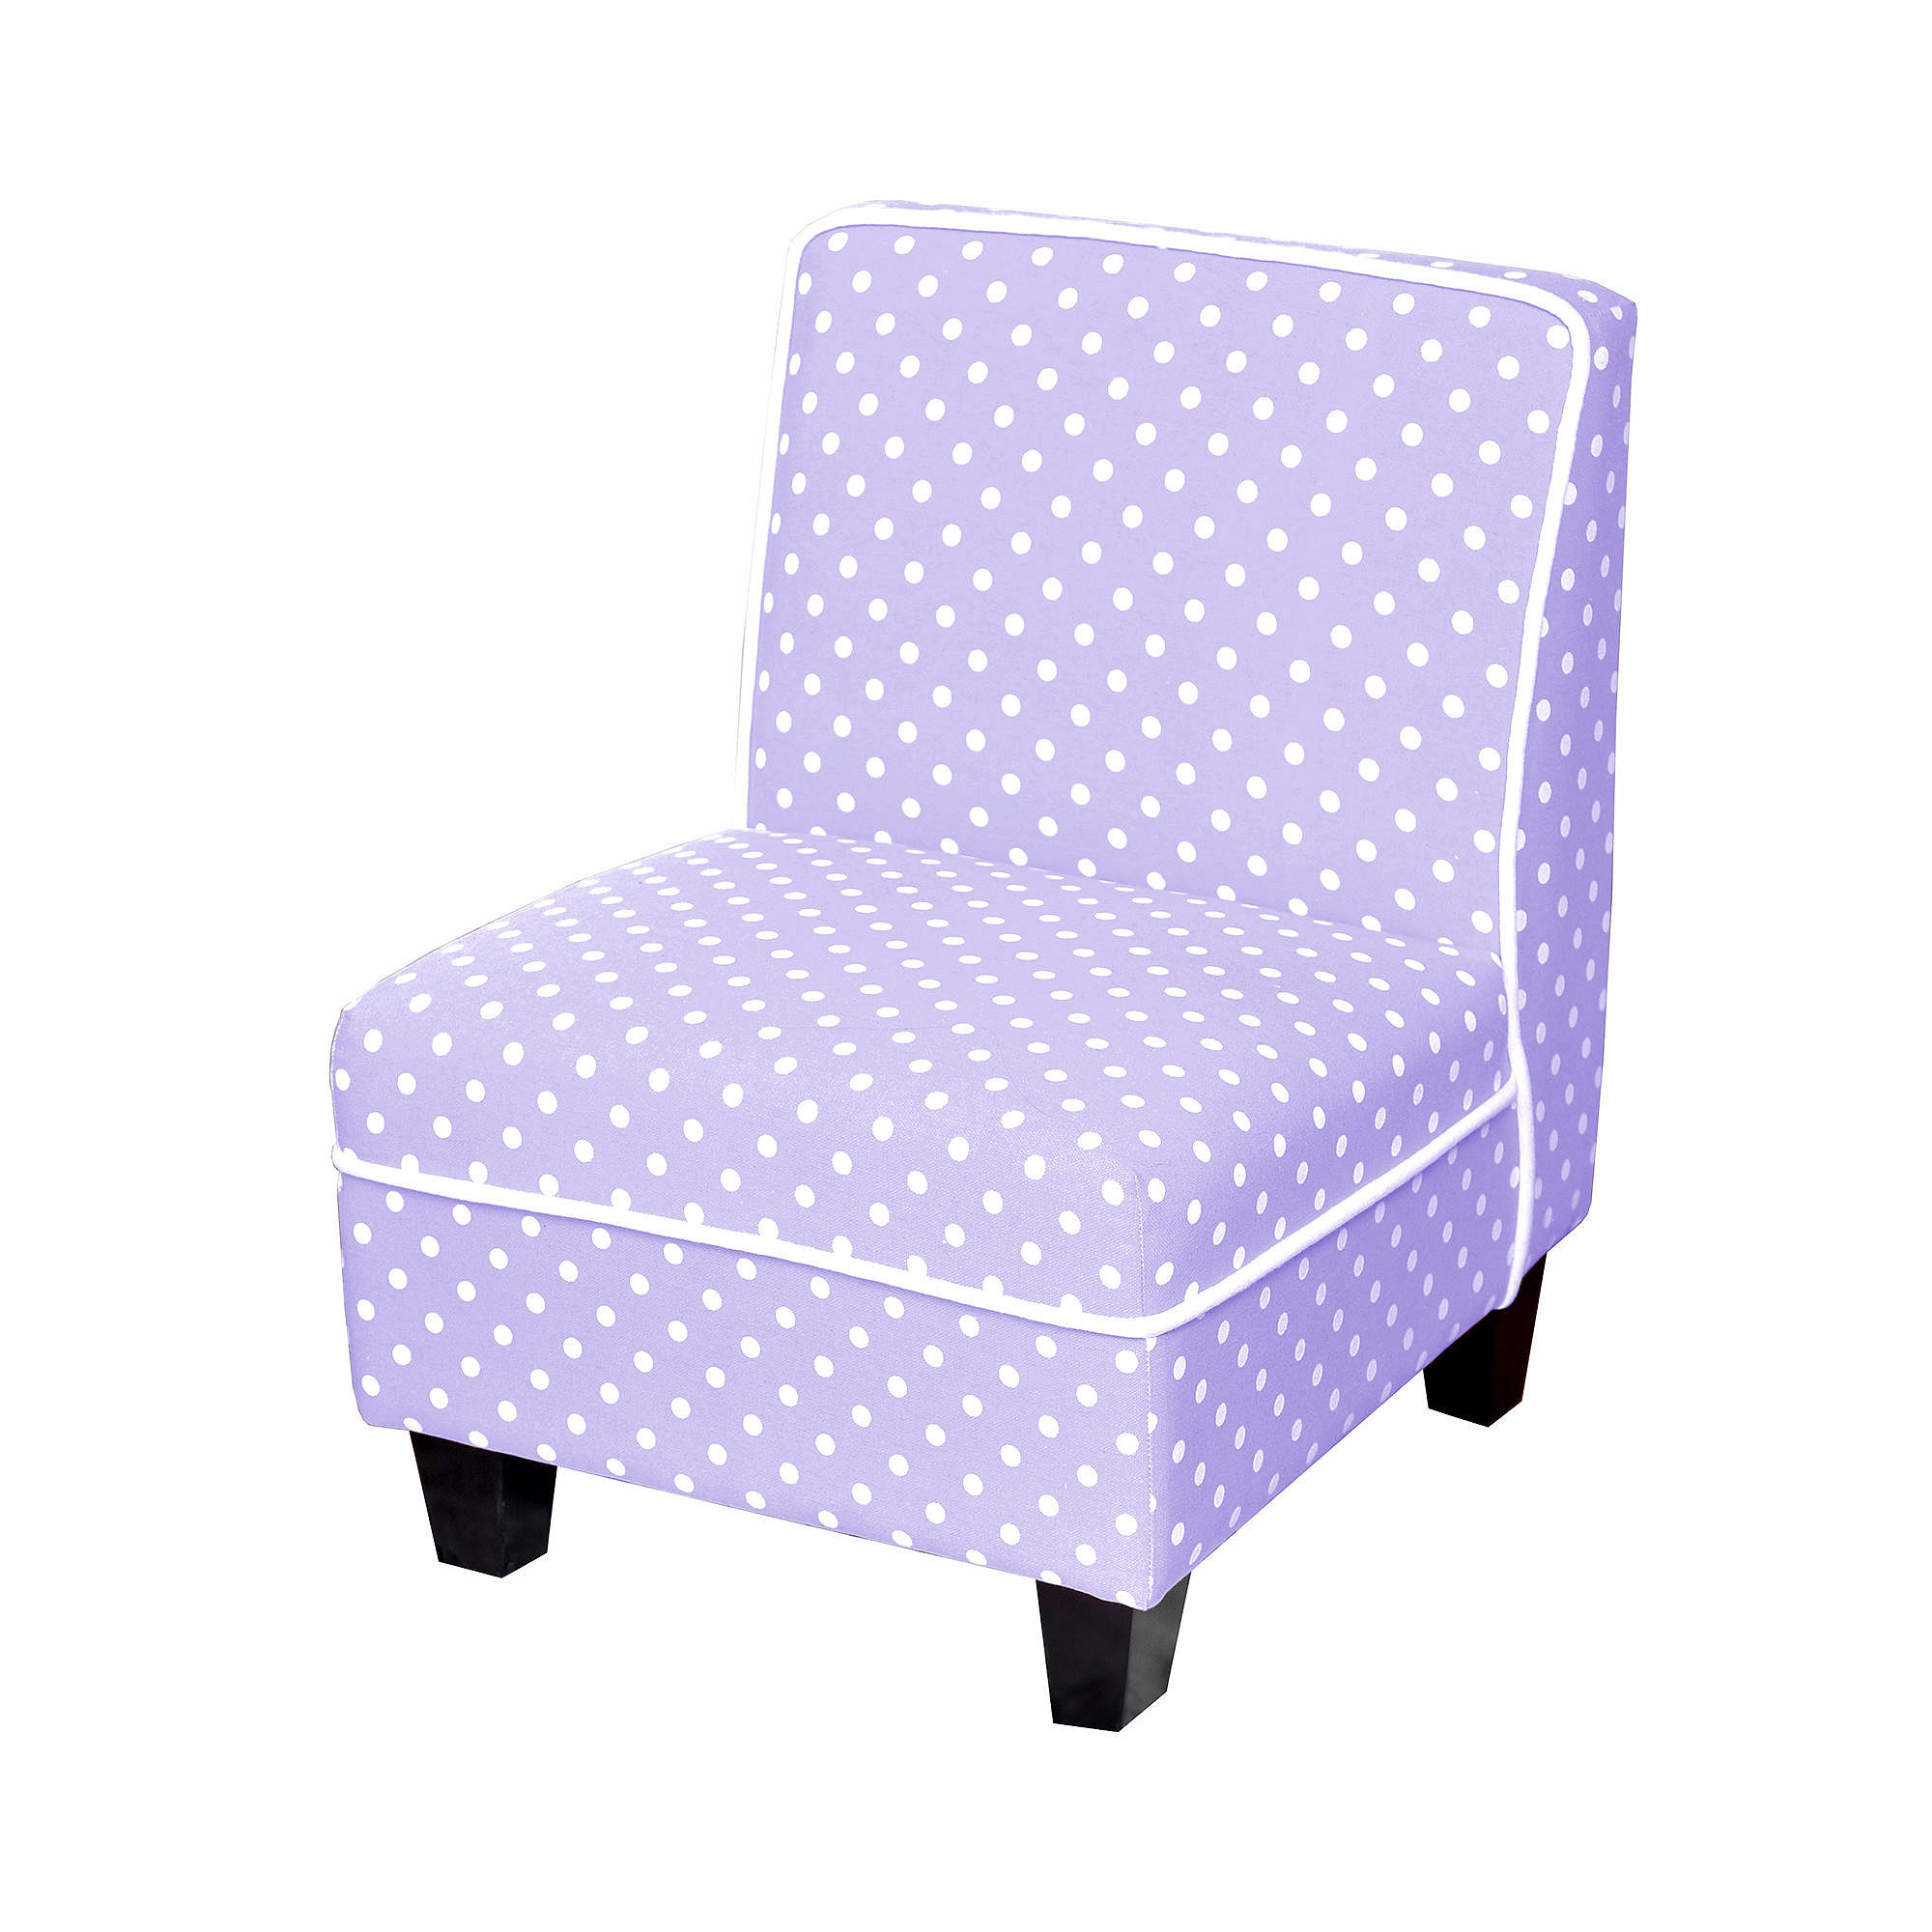 JCPenney Home™ Polka Dot Children's Slipper Chair